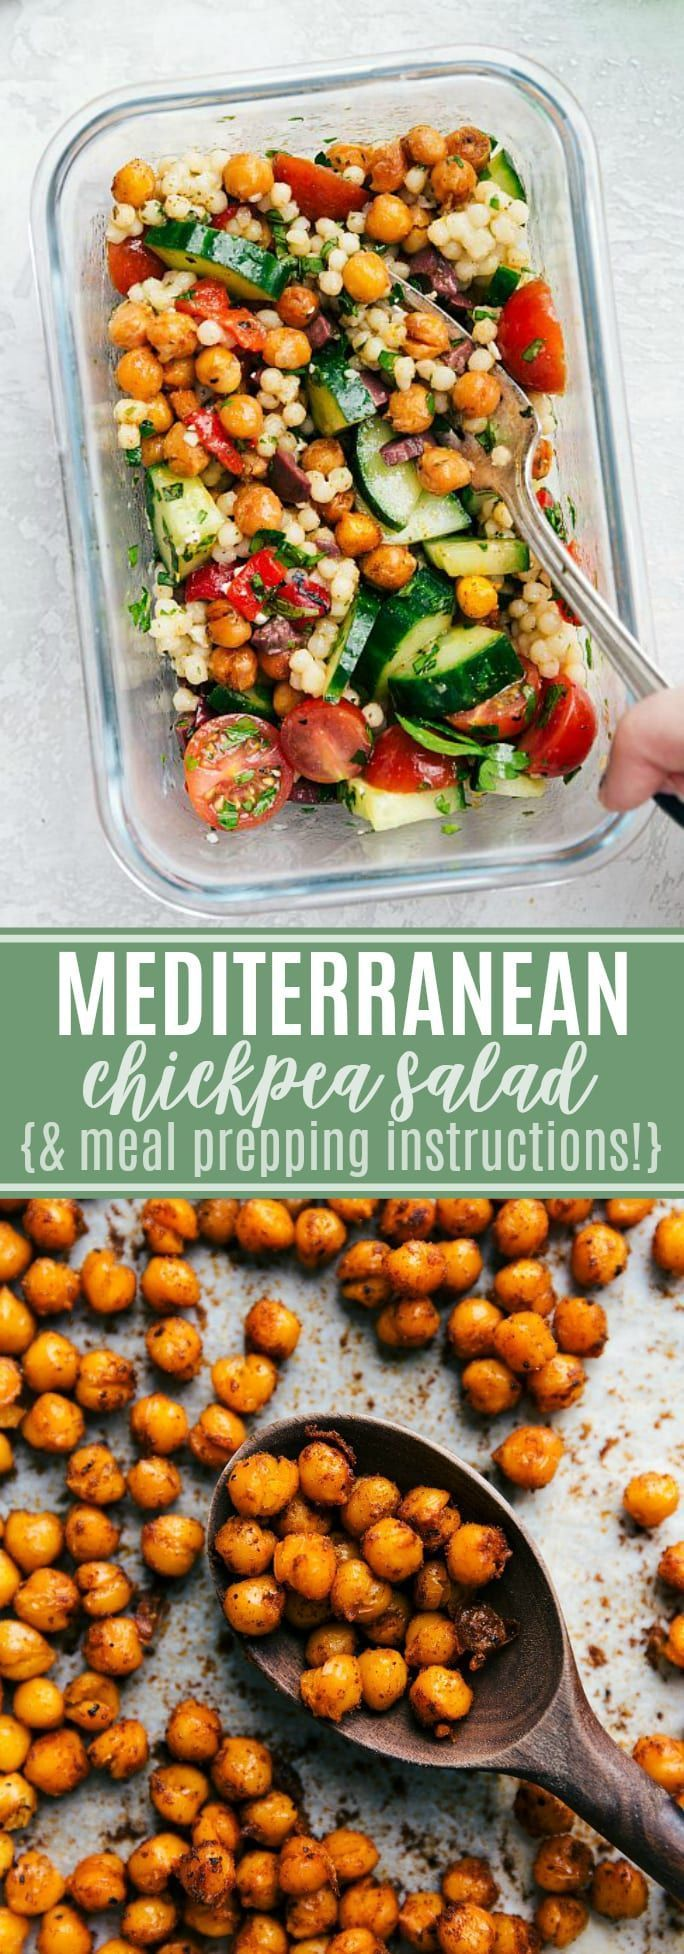 This chickpea salad is so flavorful, made with good-for-you ingredients, & easy to prepare! PLUS meal prepping instructions! via chelseasmessyapron.com #chickpea #salad #mediterranean #easy #quick #meal #prep #healthy #recipe #kidfriendly #couscous #fresh images